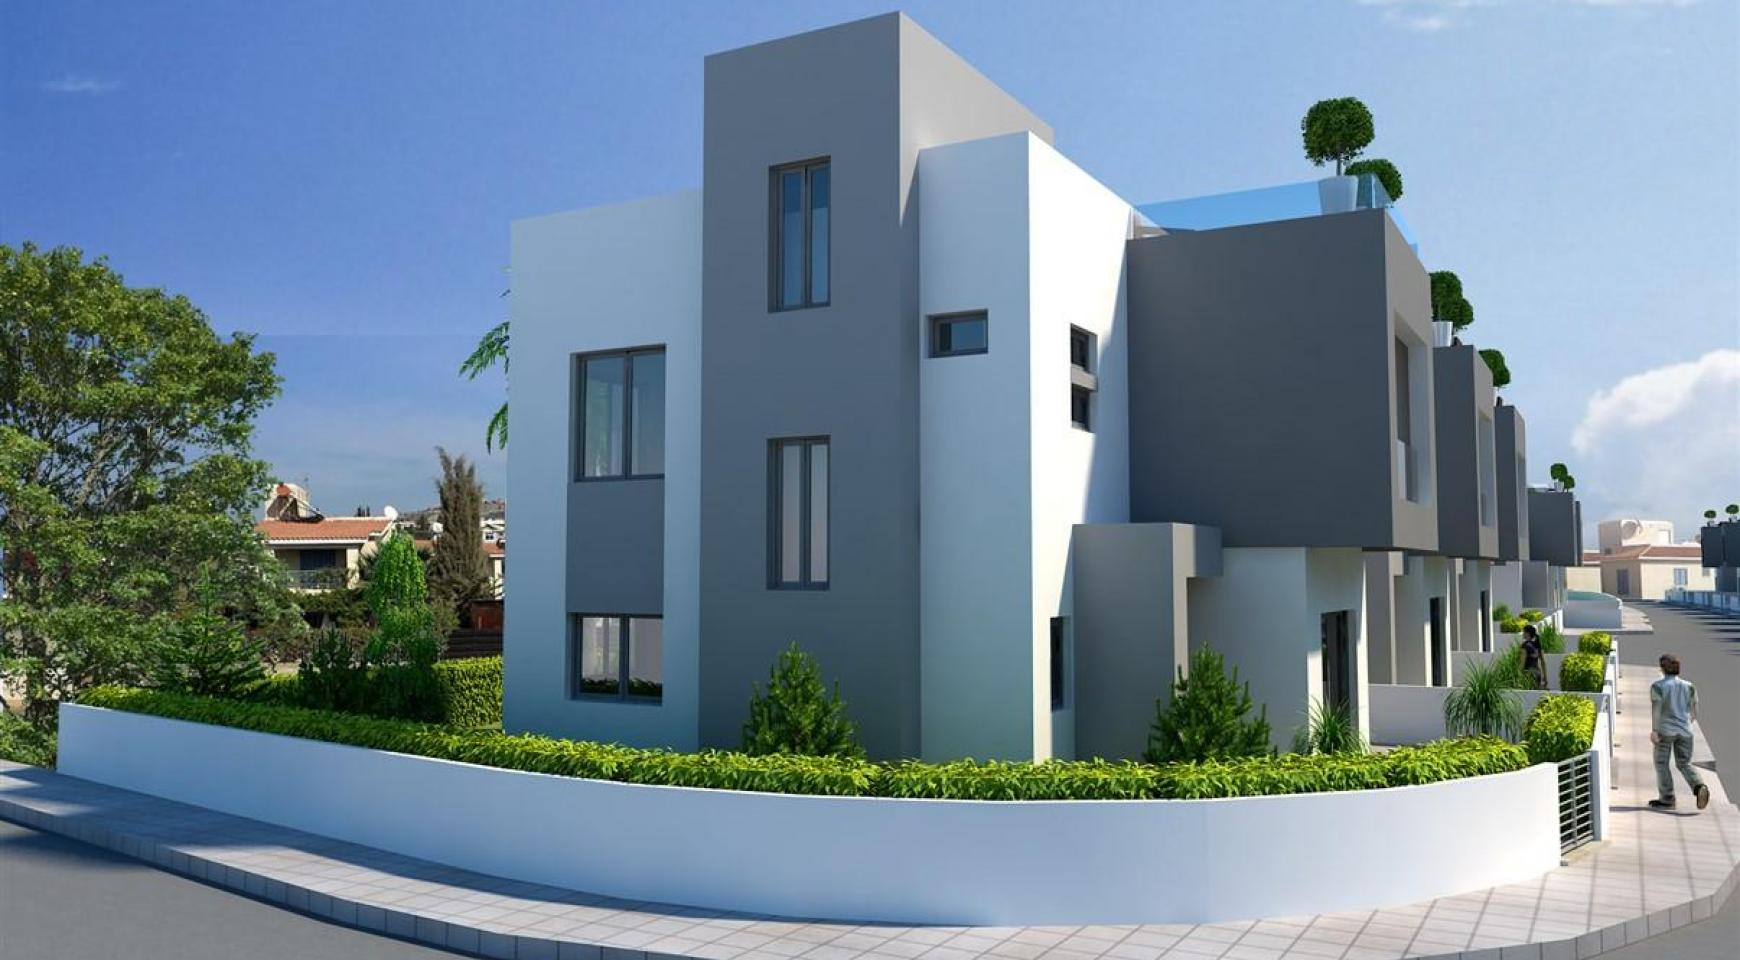 3 Bedroom Villa in New Project in Paphos - 37